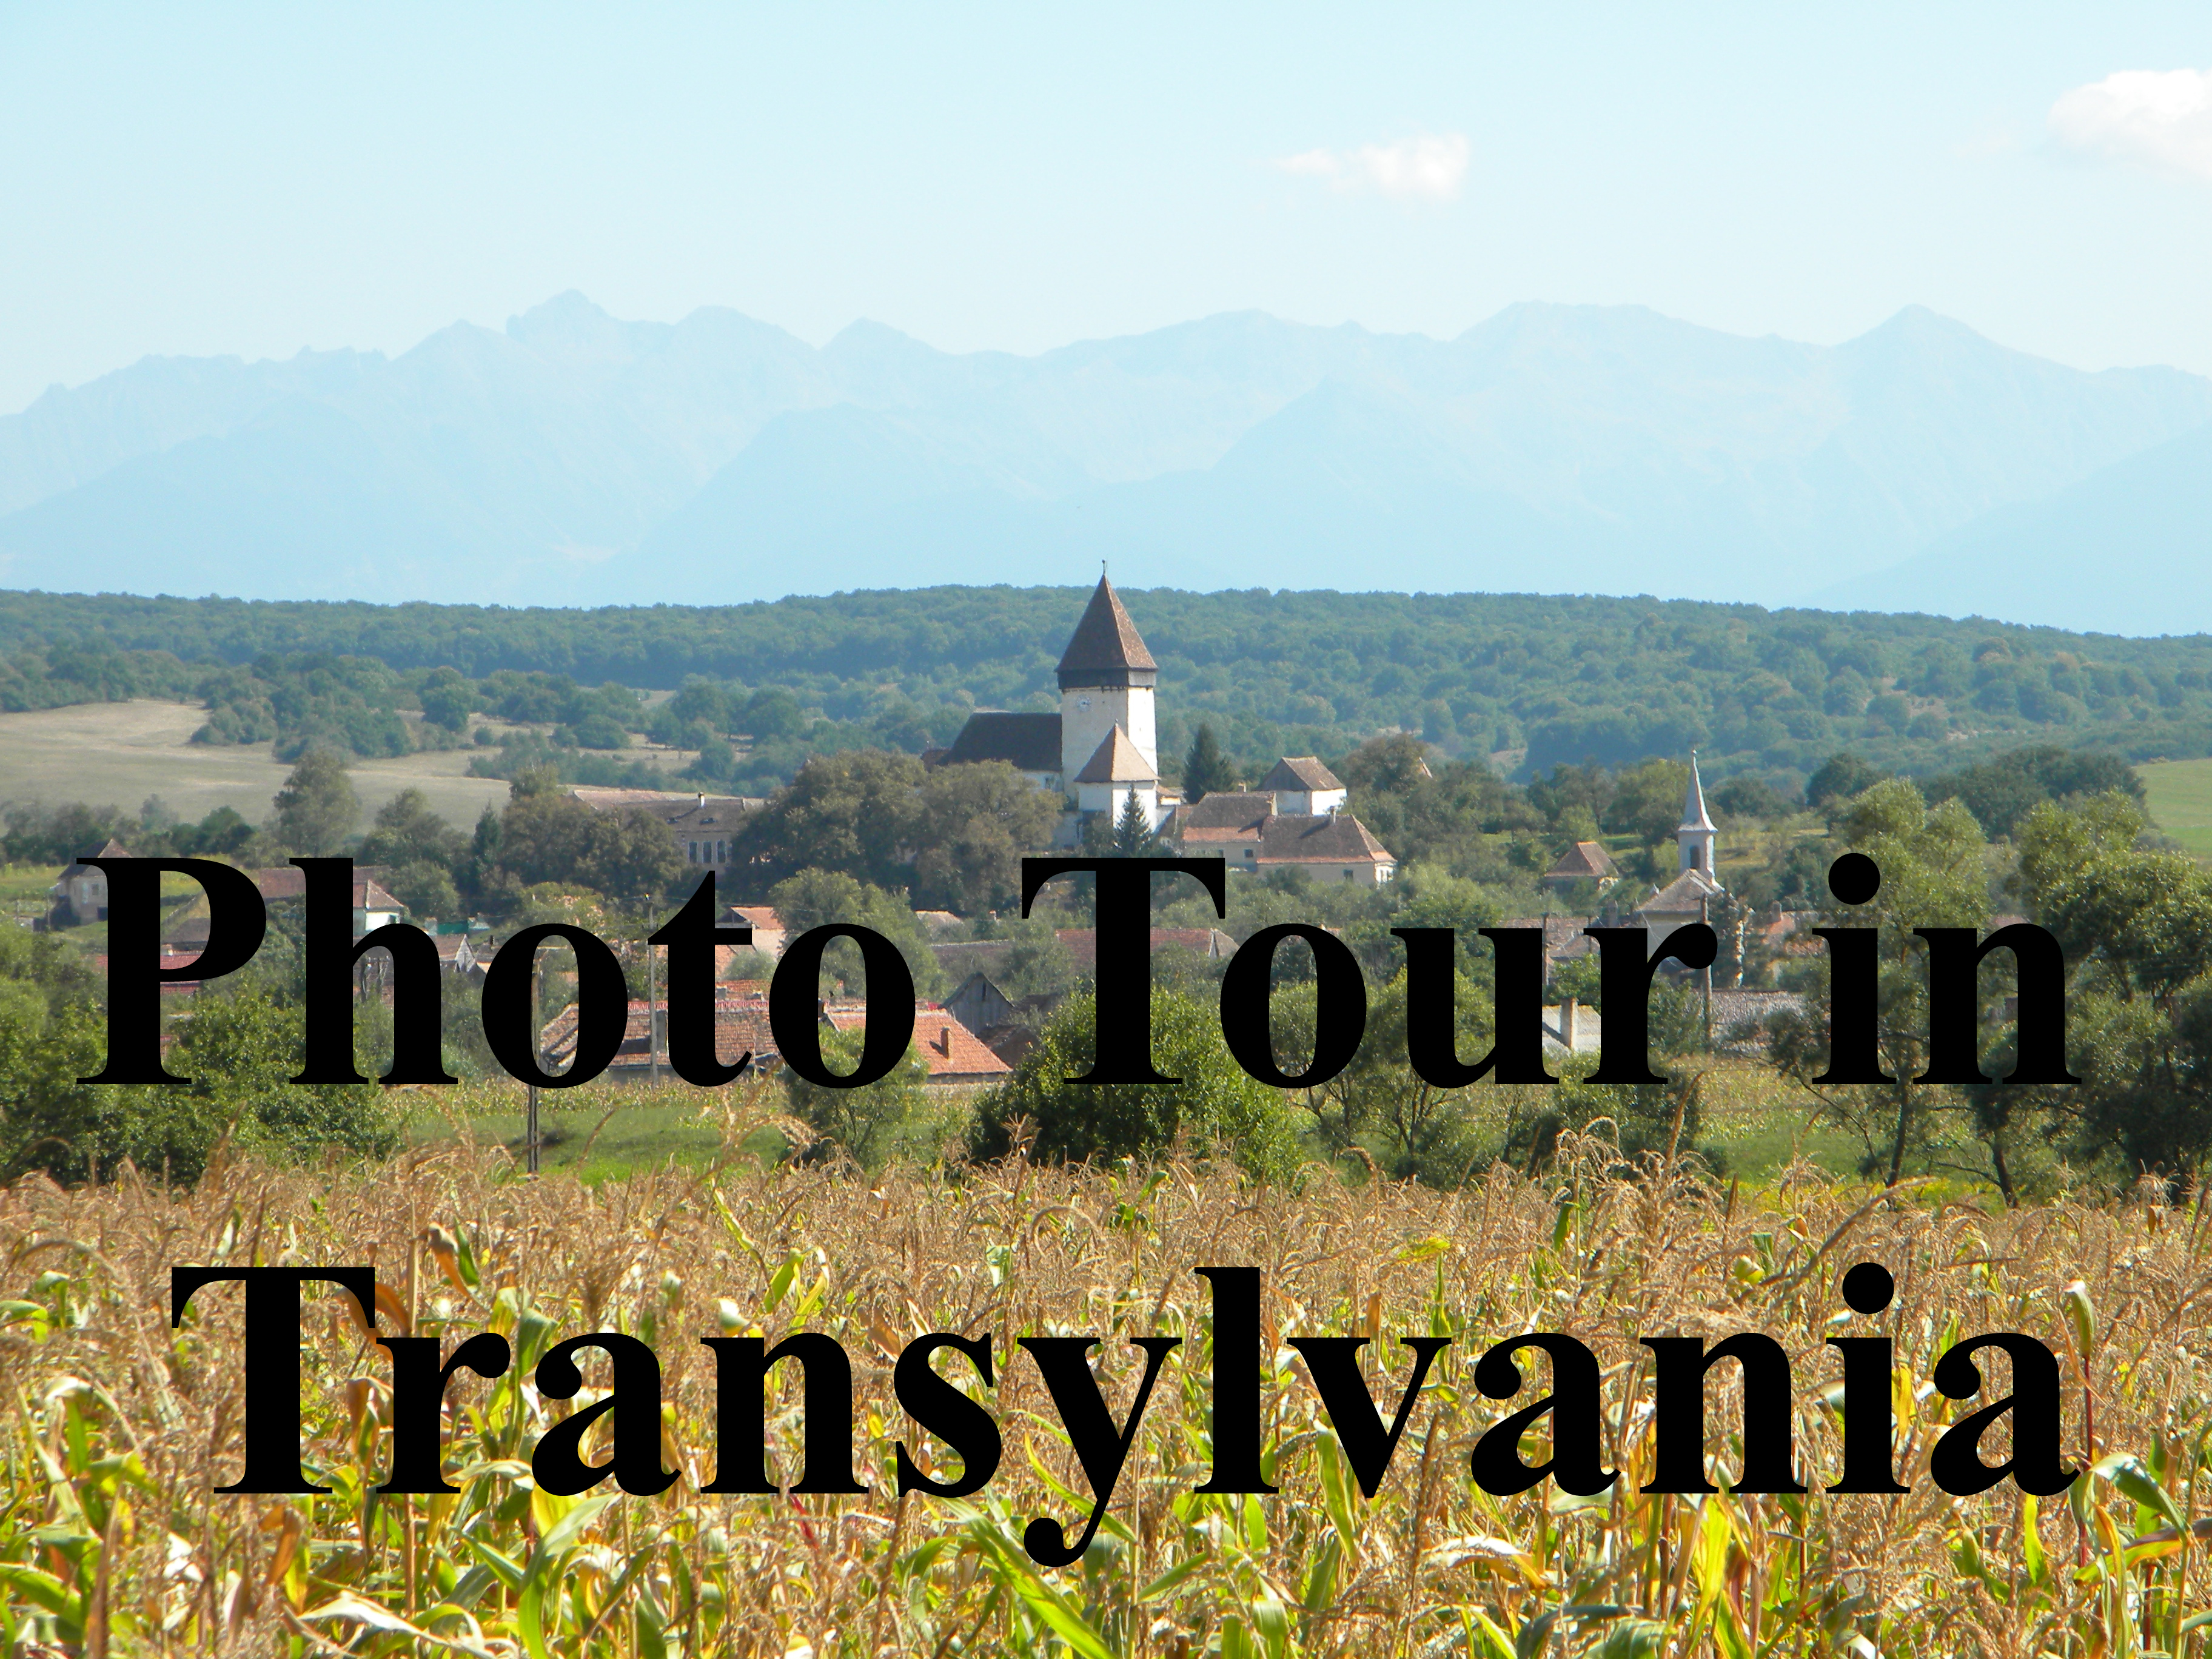 Photo Tour in Transylvania